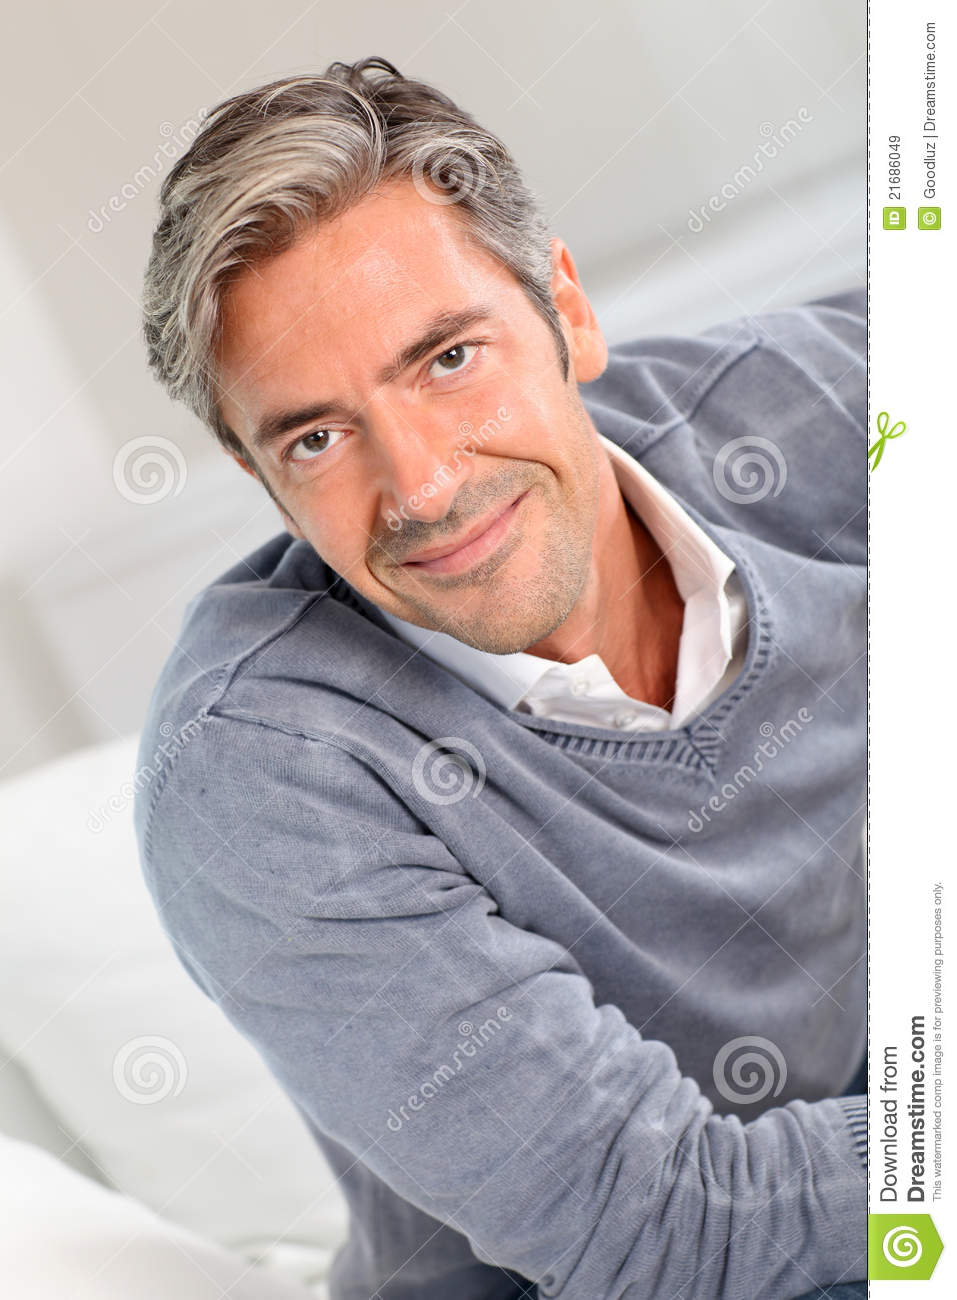 Royalty Free Stock Images: Portrait of smiling mature man with grey ...